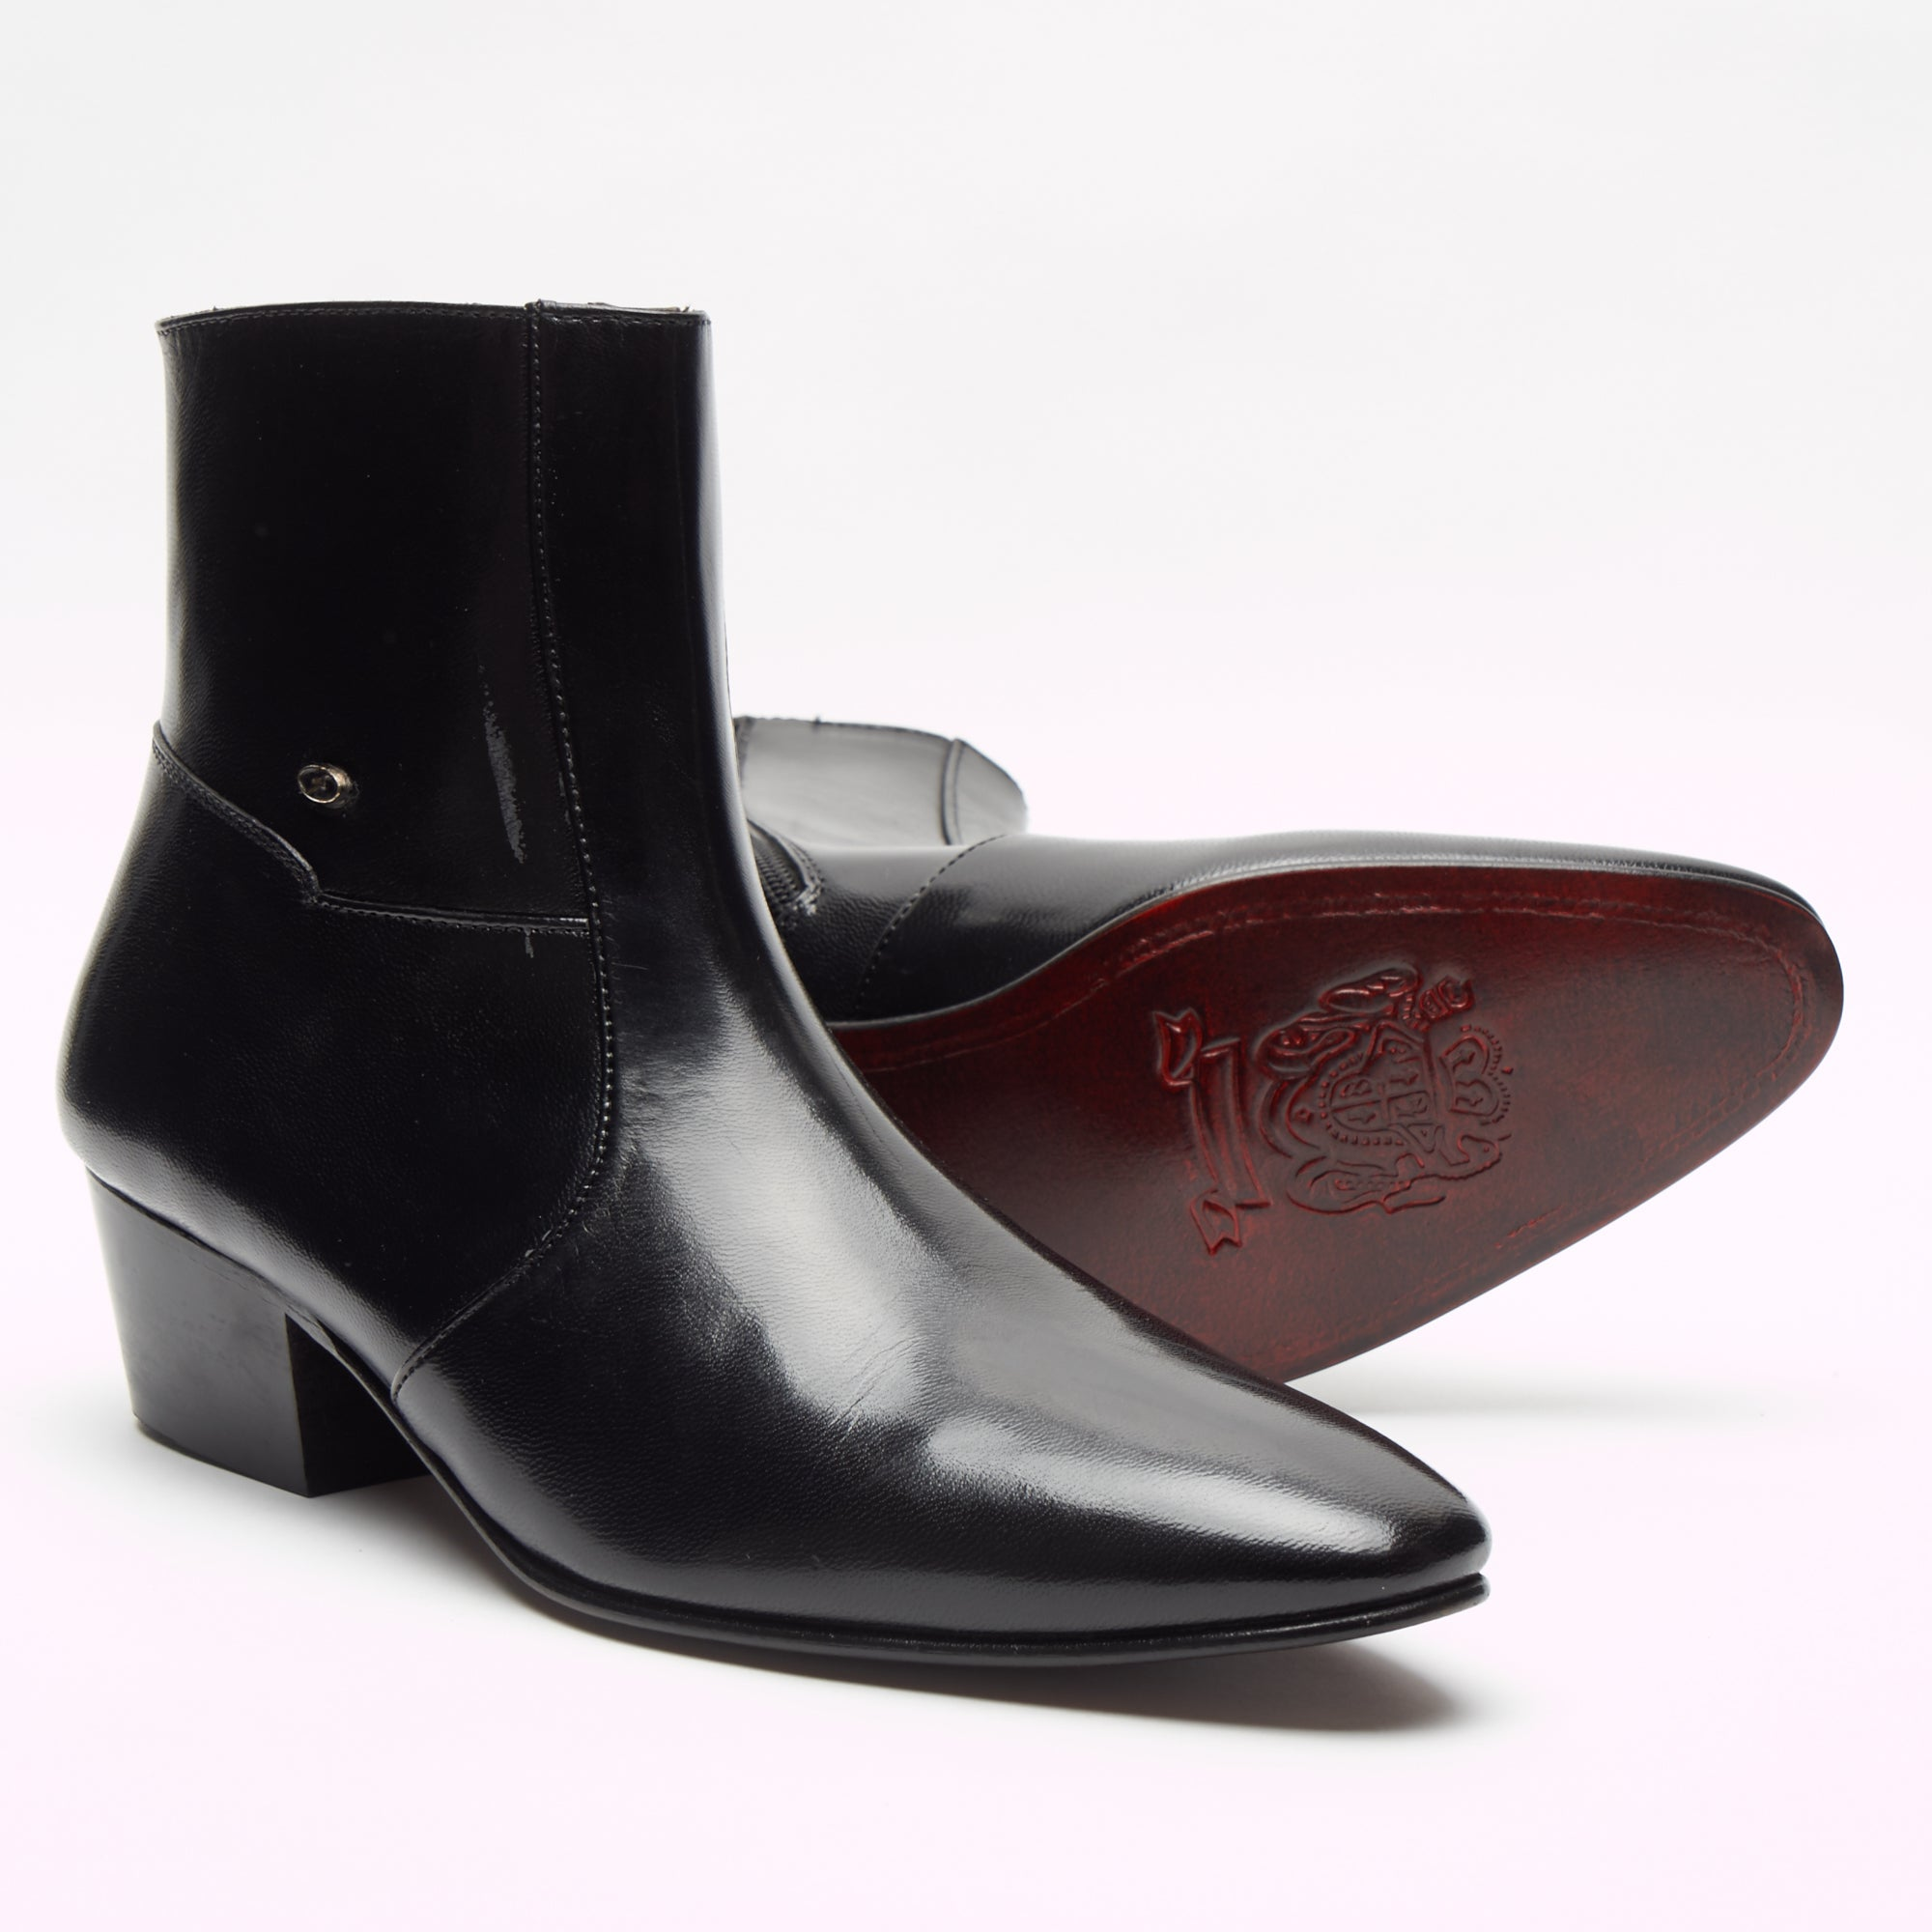 Mens Cuban Heel Leather Boots - 26490 Black